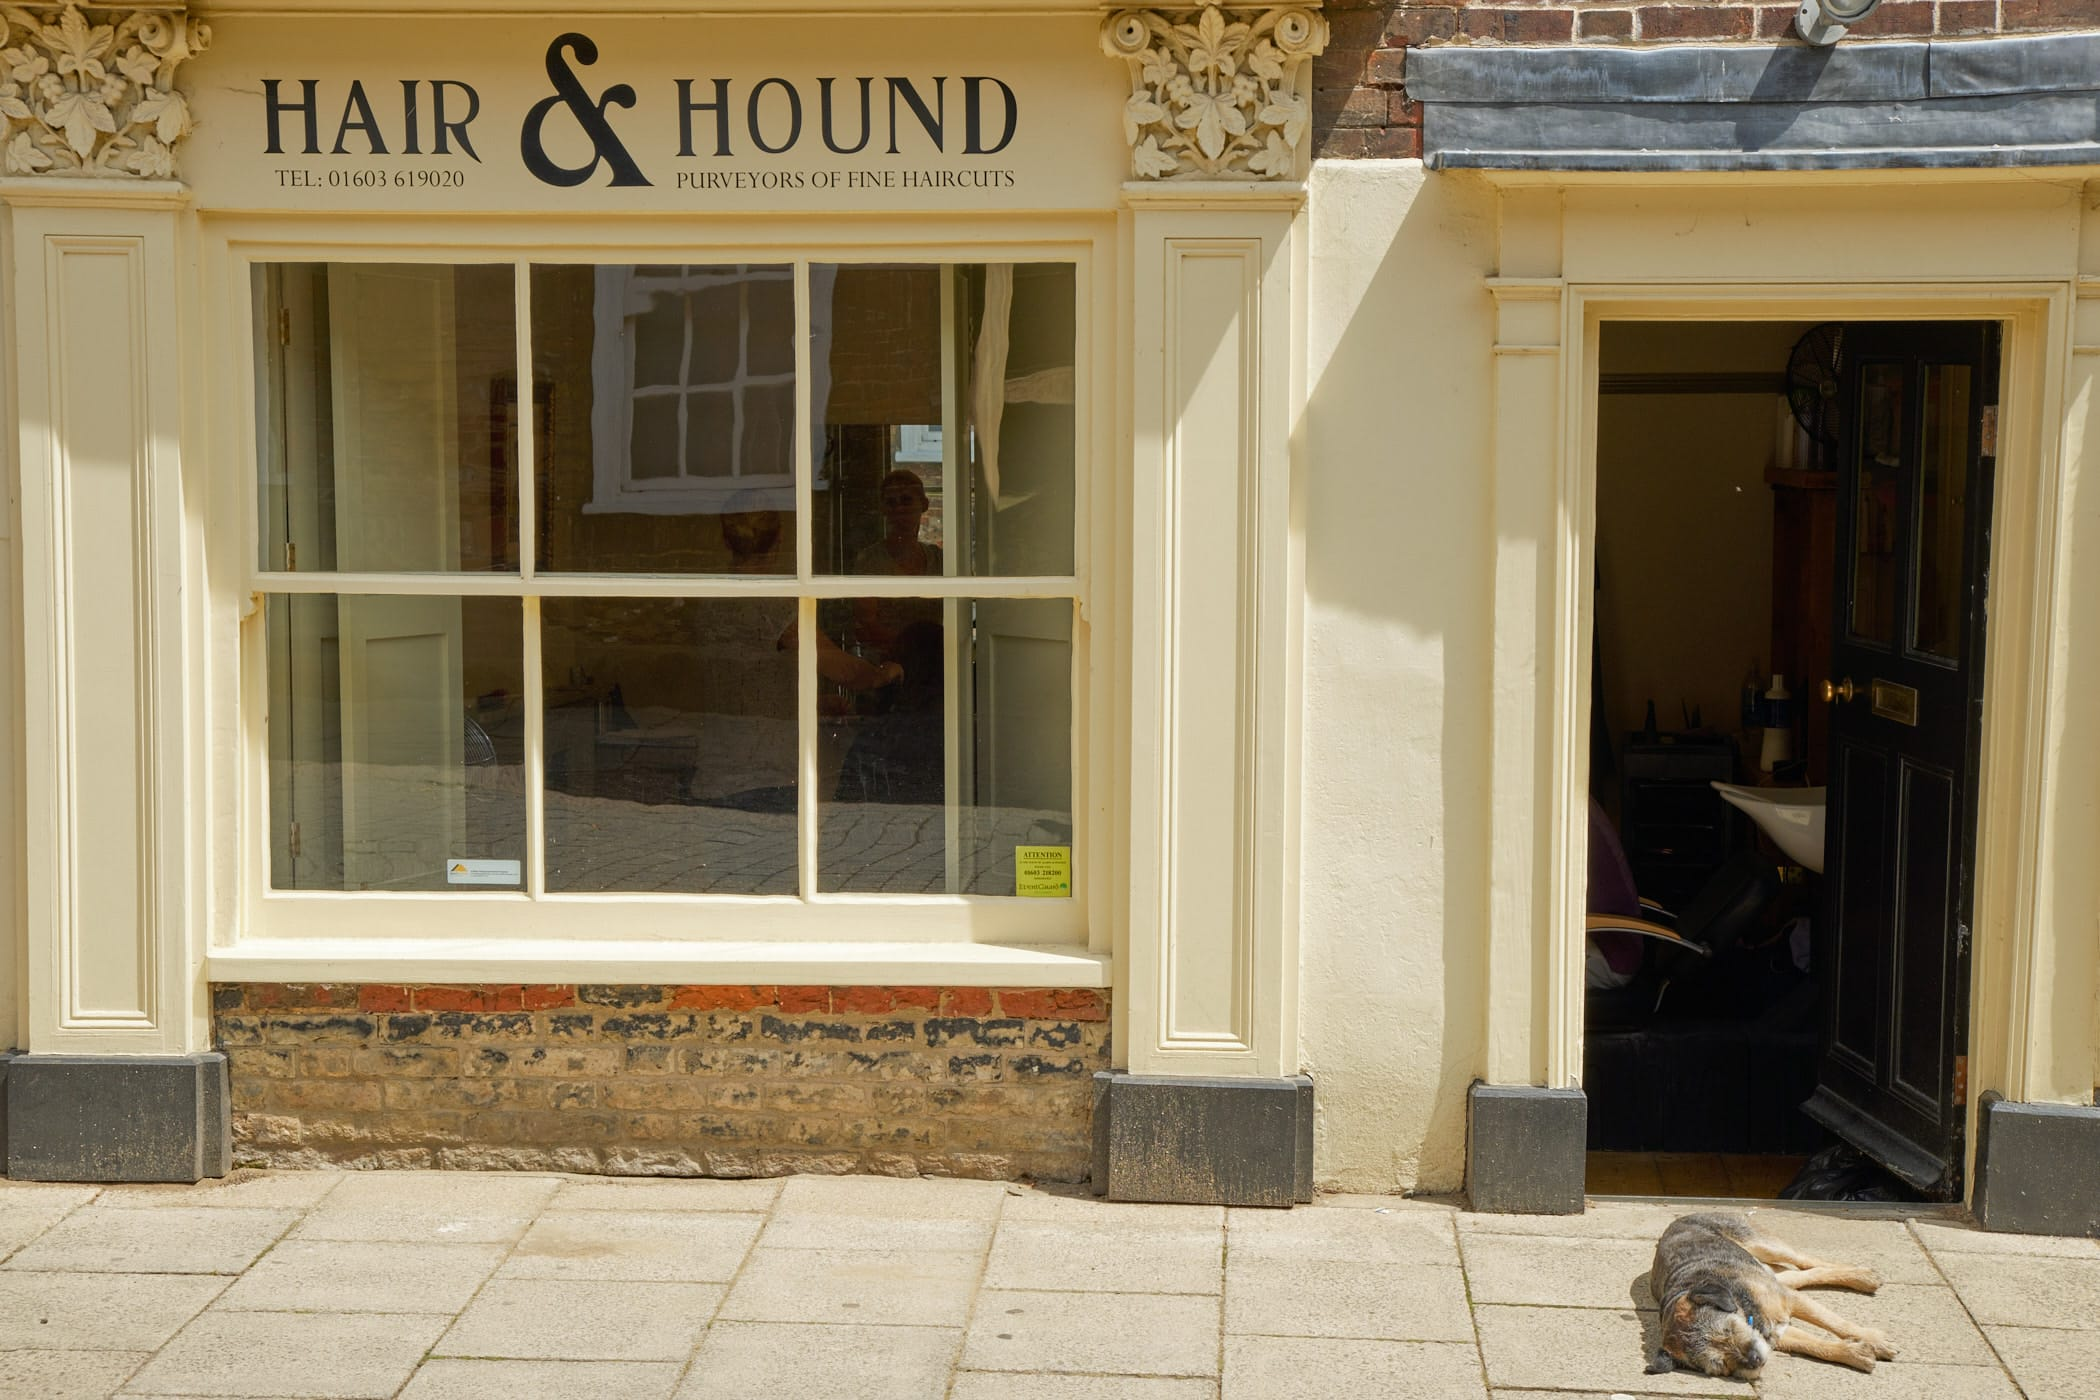 Hair & Hound, with hound